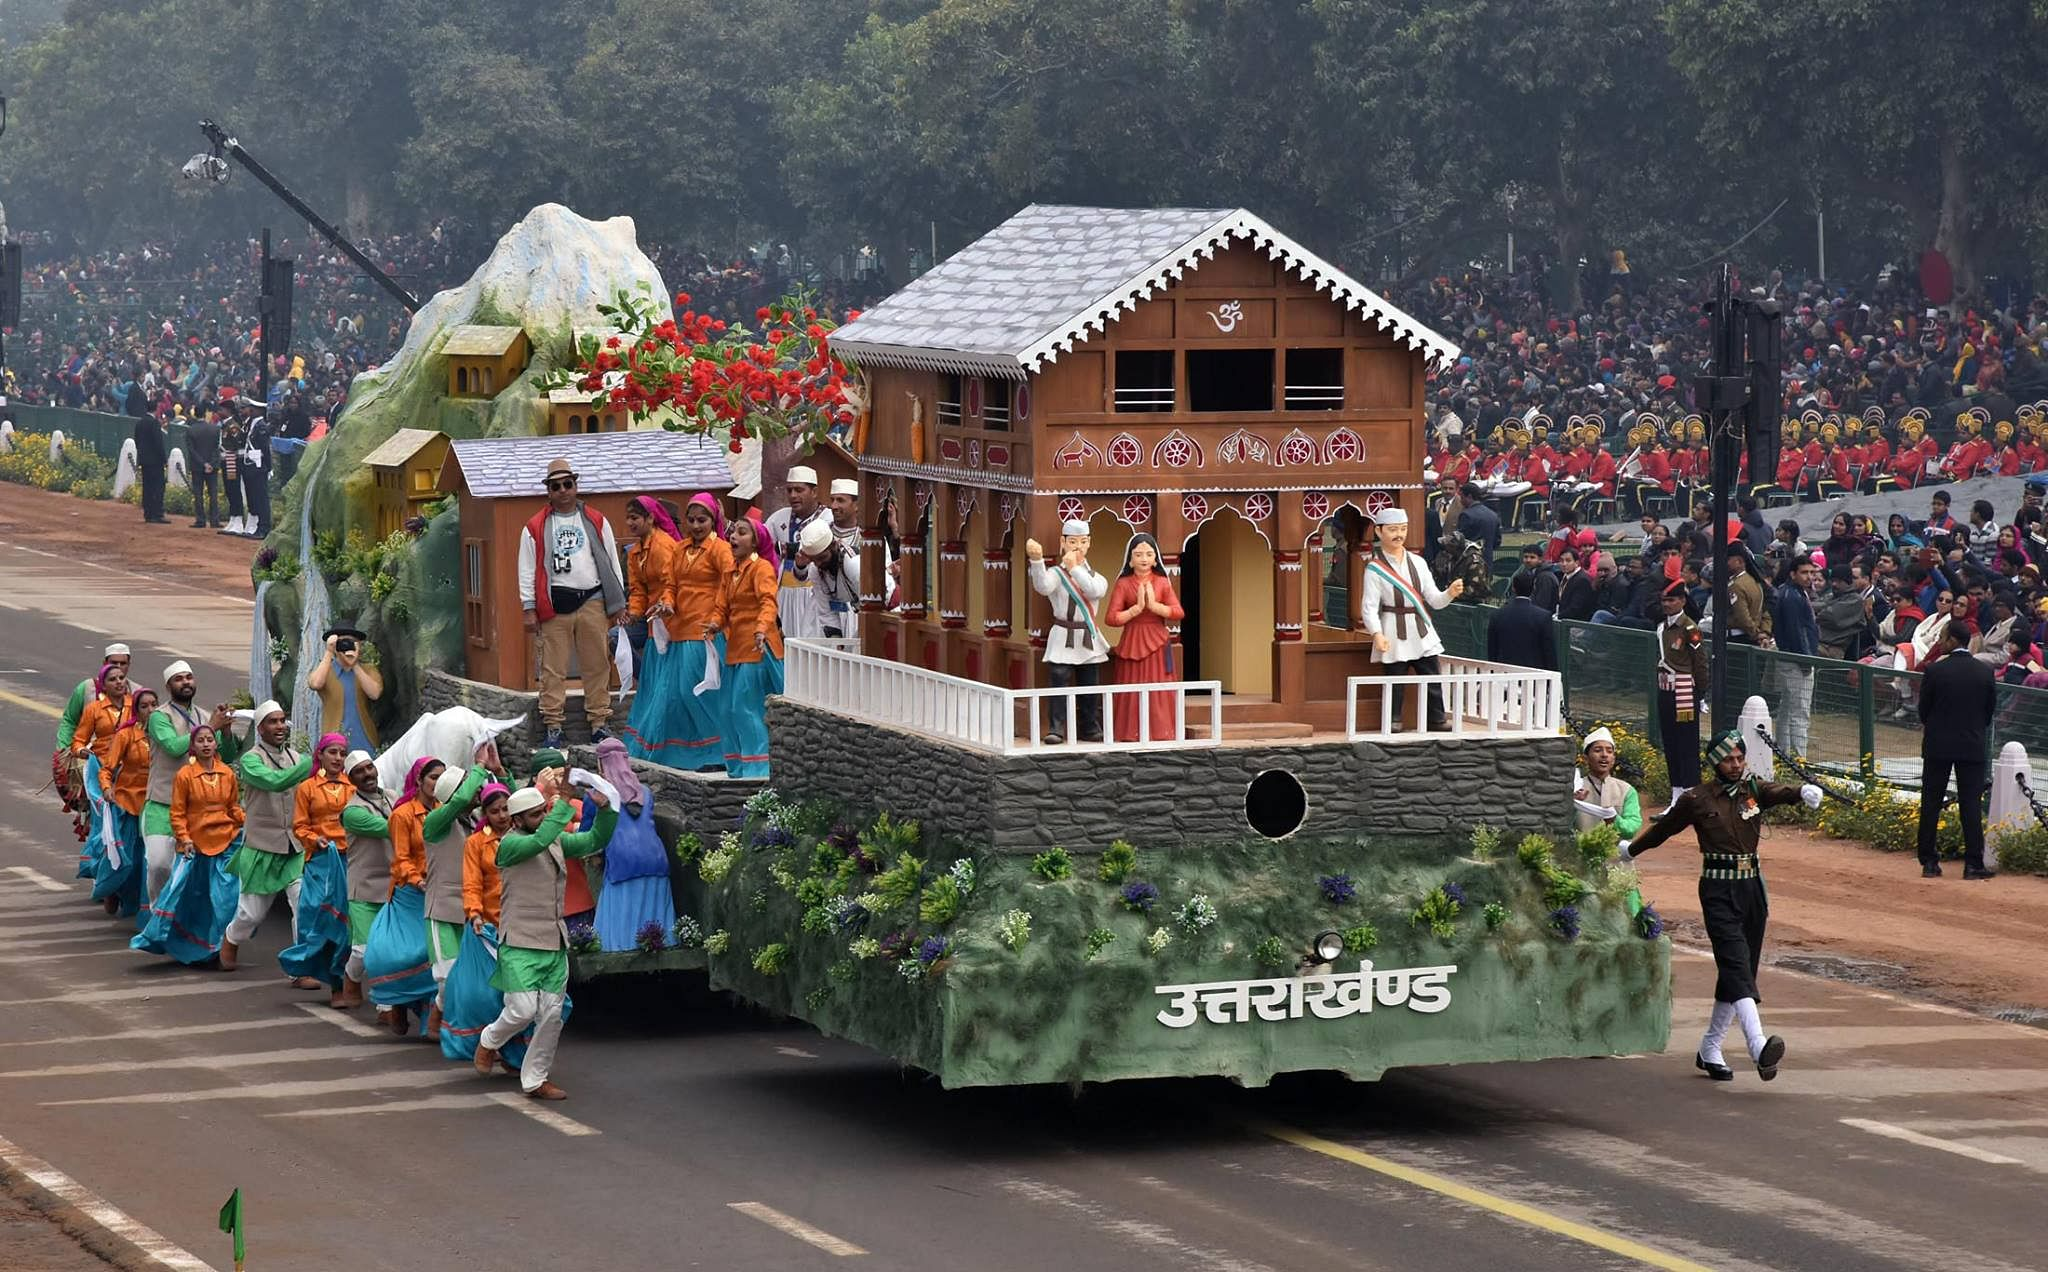 Republic Day 2018: Check Out the Unique Floats in The Parade